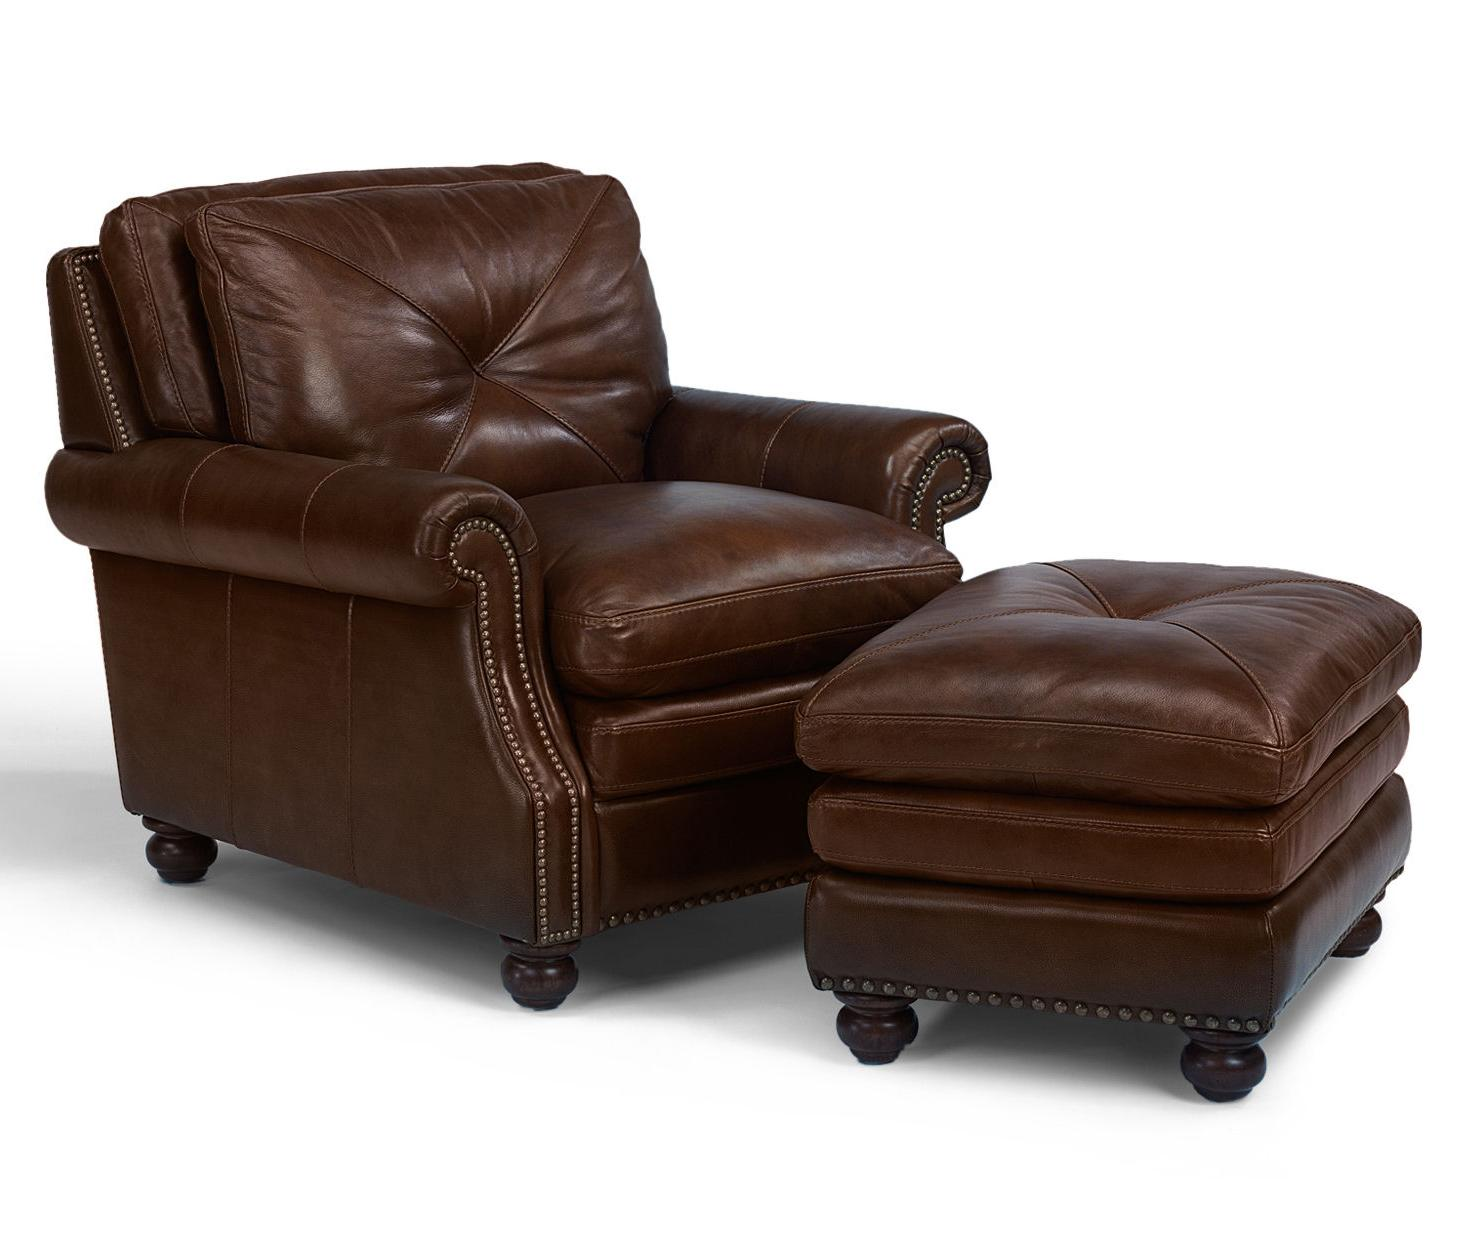 Flexsteel Laudes Suffolk Leather Chair And Ottoman Combination Set With Nailhead Trim Ahfa Dealer Locator